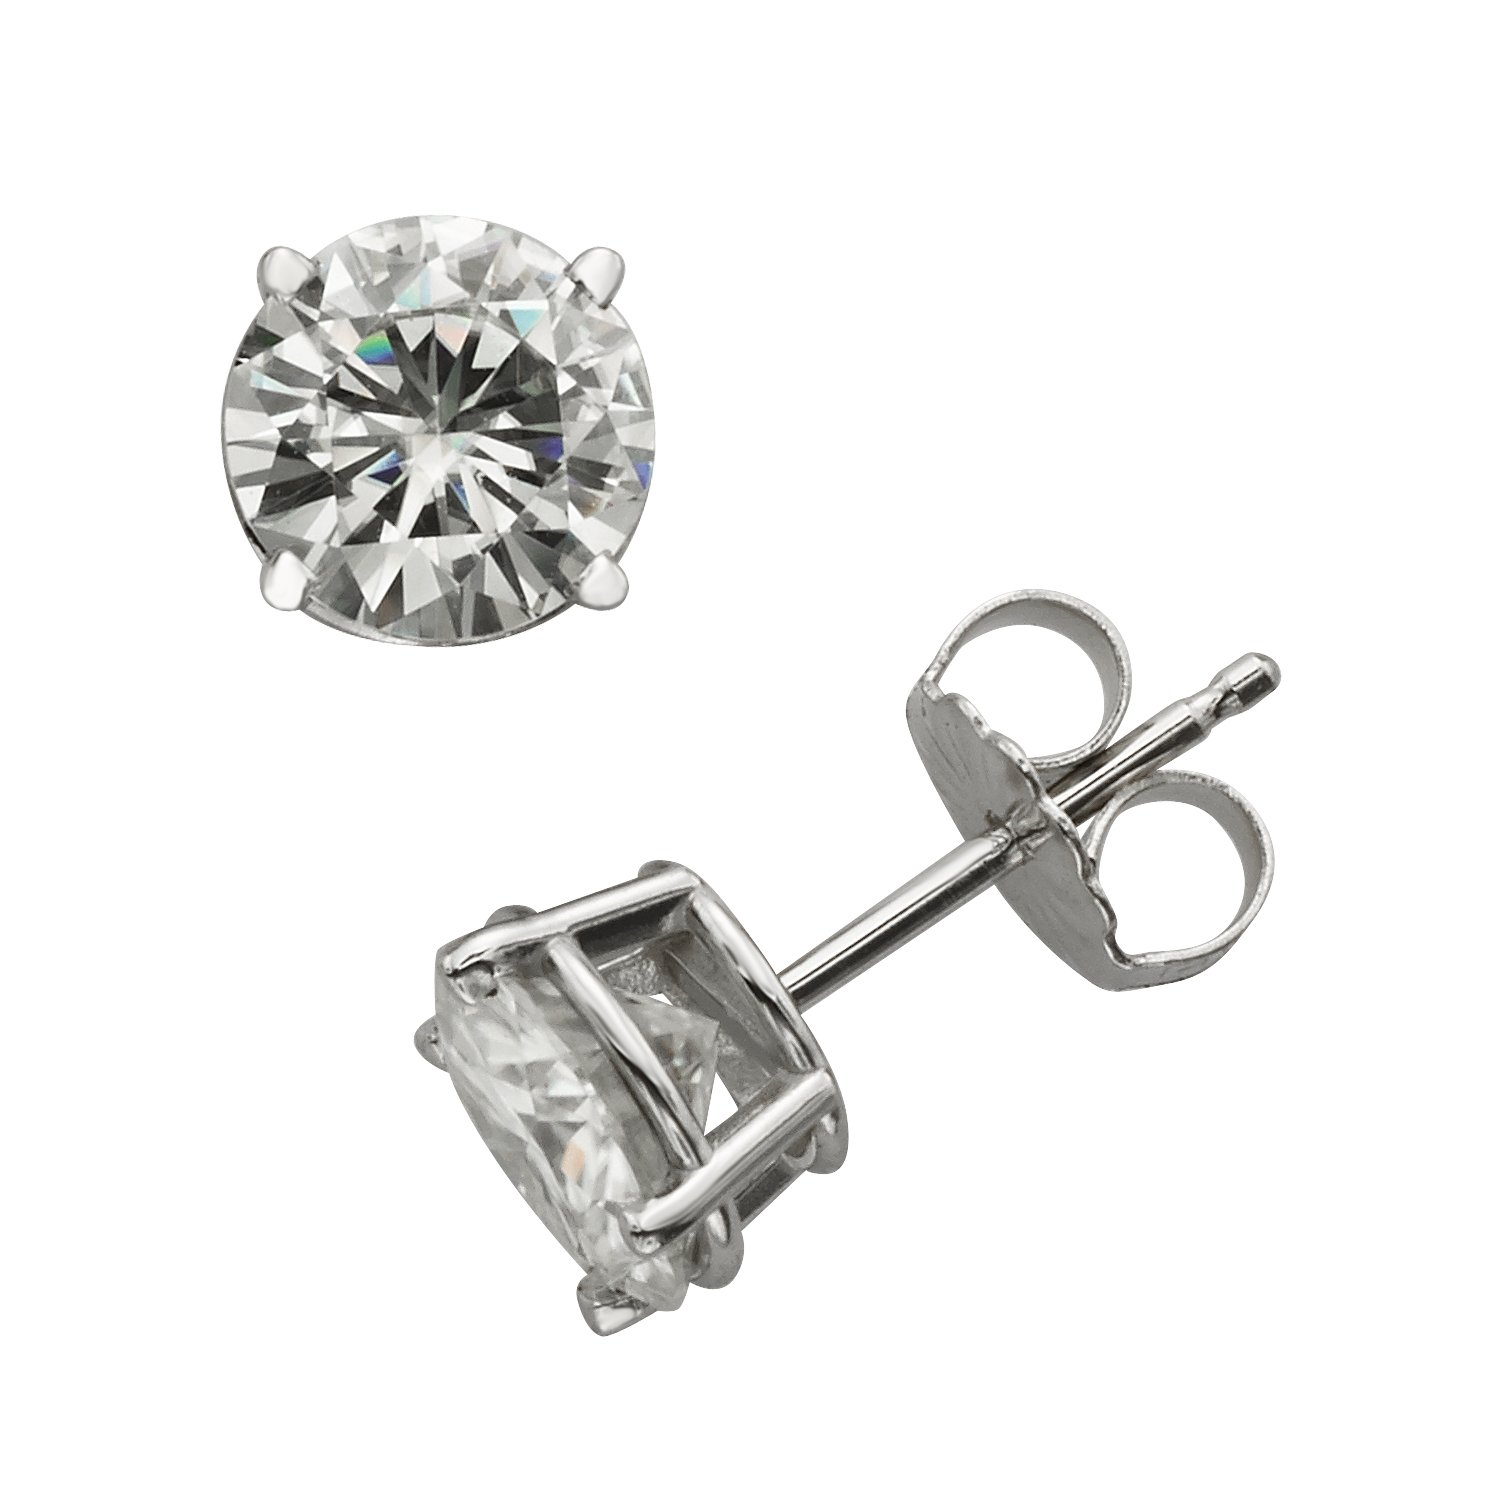 Forever Brilliant White Gold 6.5mm Round Moissanite Stud Earrings, 2.00cttw DEW By Charles & Colvard by Charles & Colvard